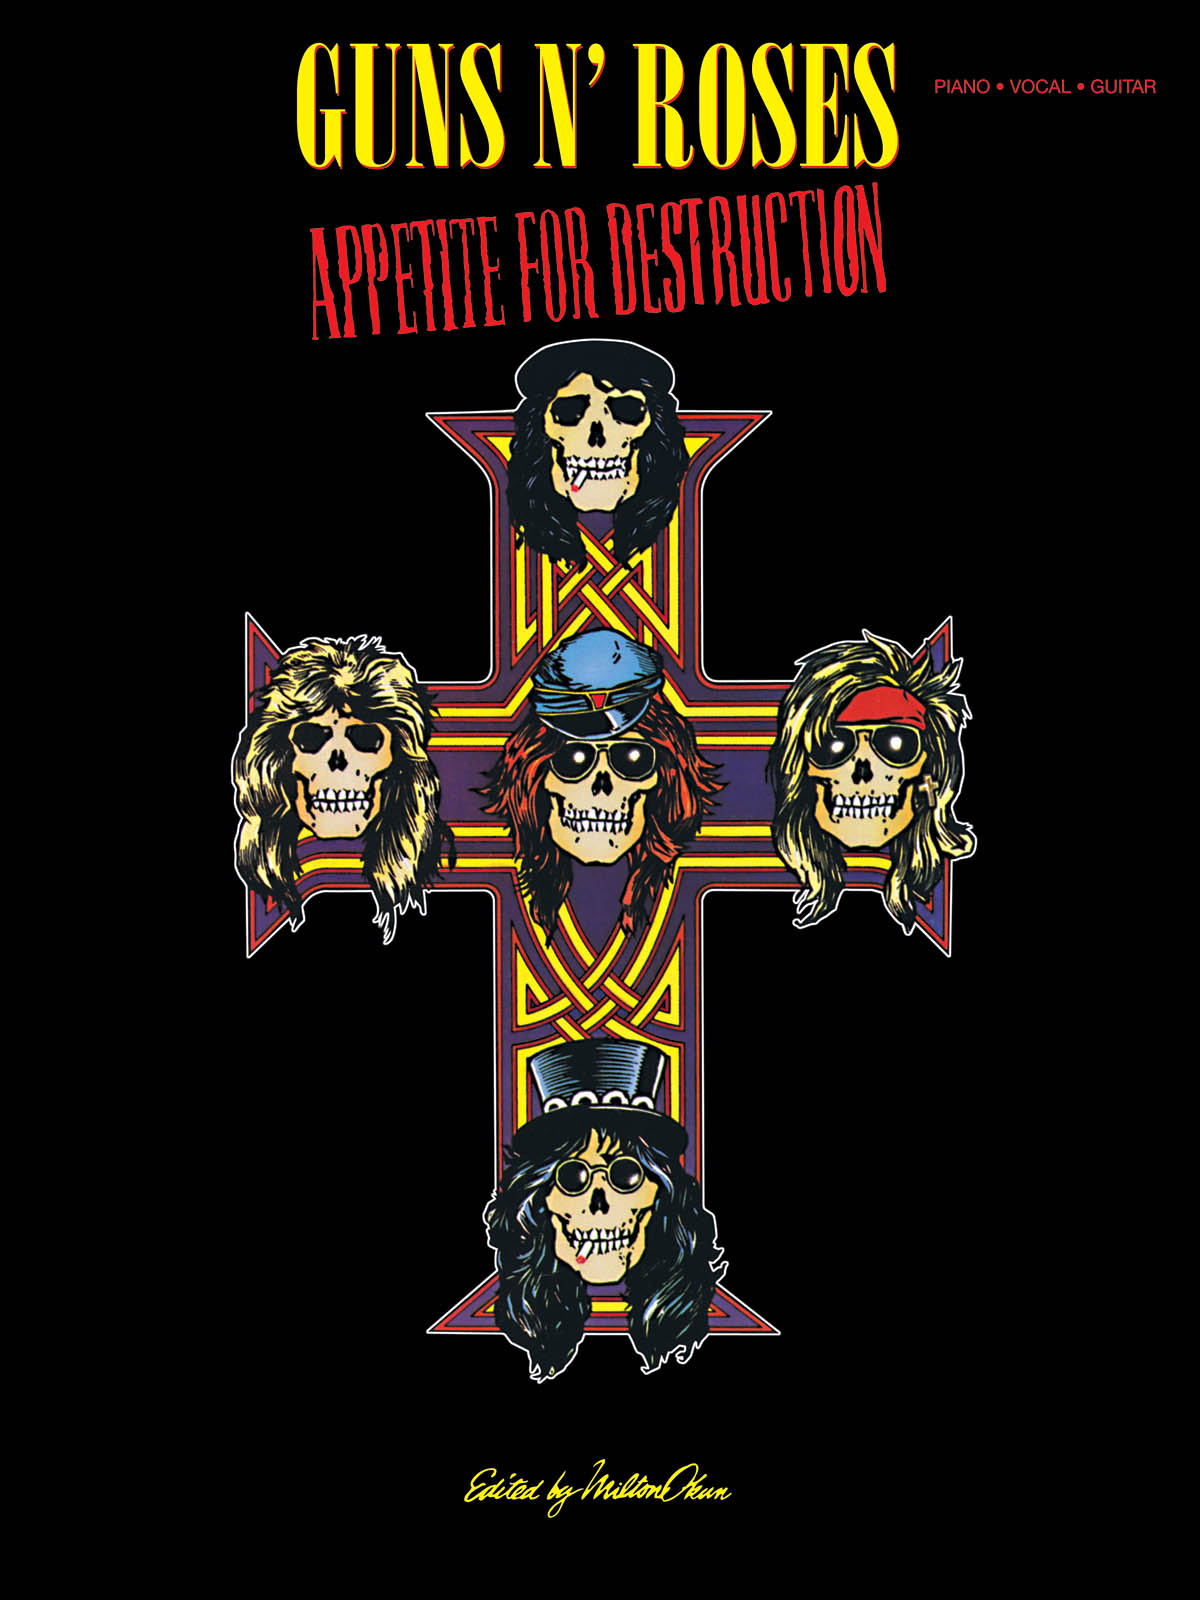 Guns N' Roses: Guns N' Roses - Appetite for Destruction: Piano  Vocal and